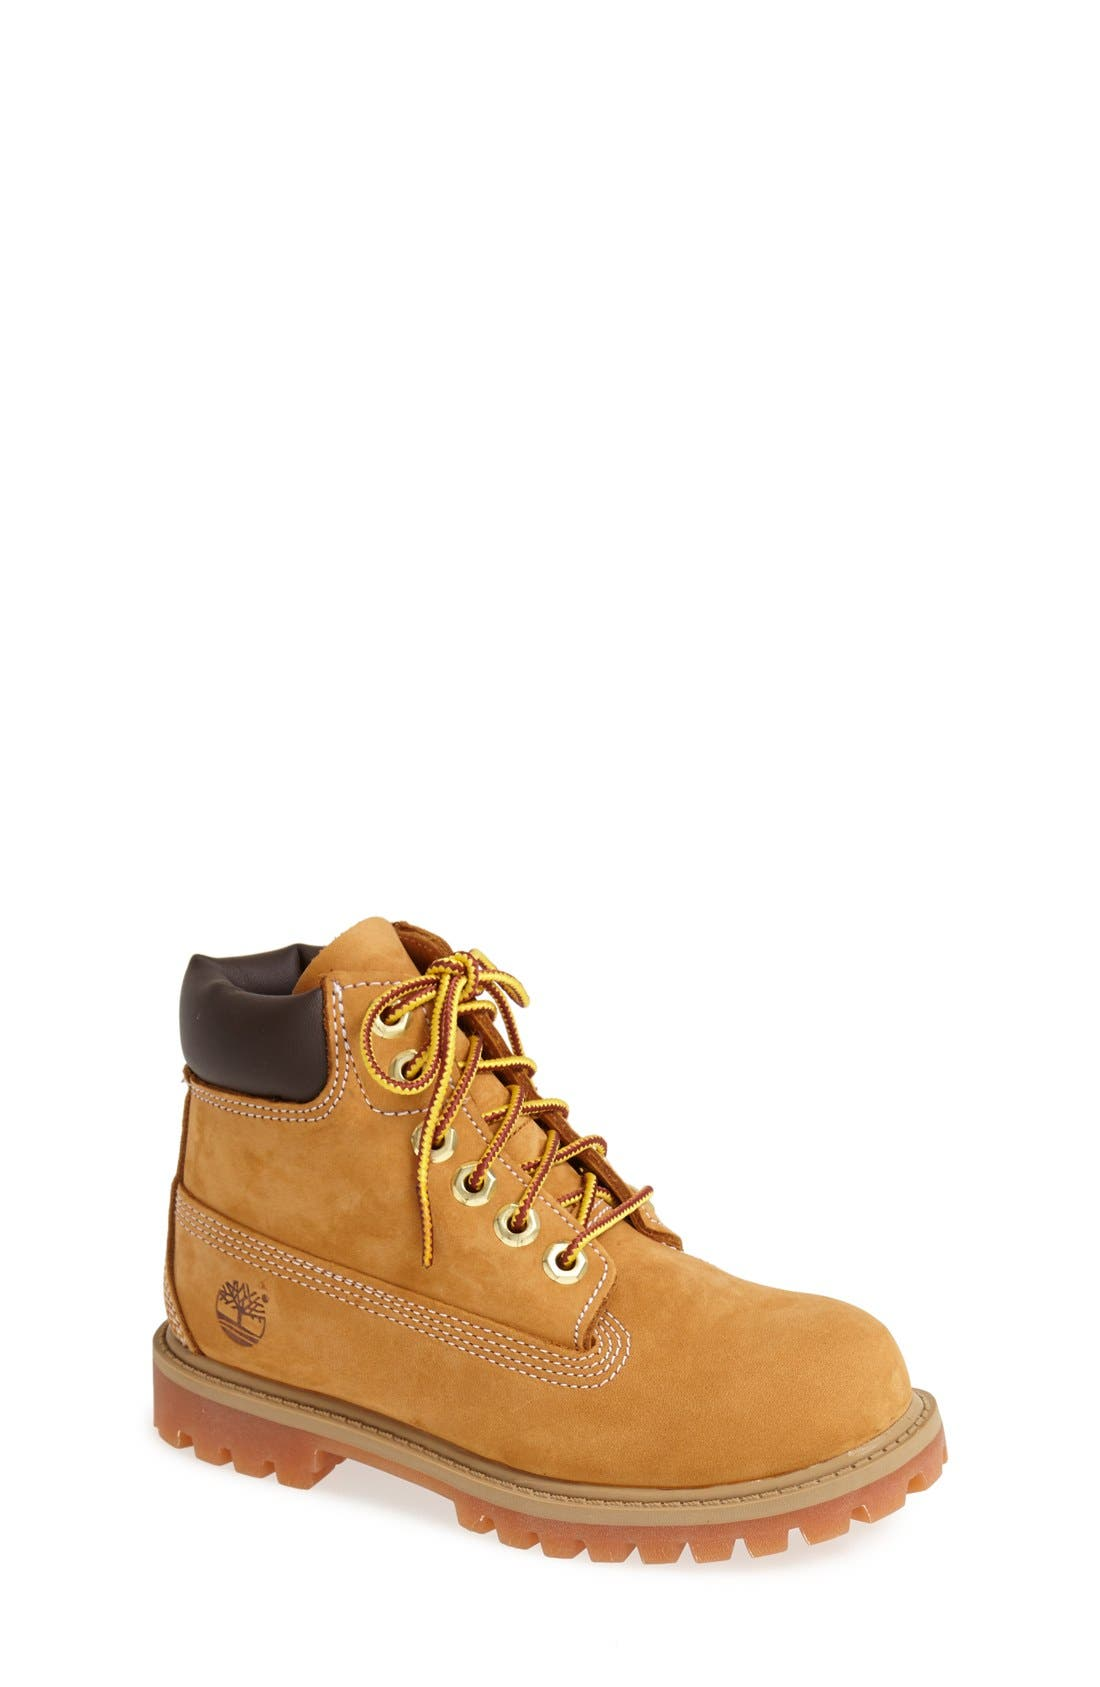 TIMBERLAND '6 Inch Premium' Waterproof Boot, Main, color, WHEAT NUBUCK